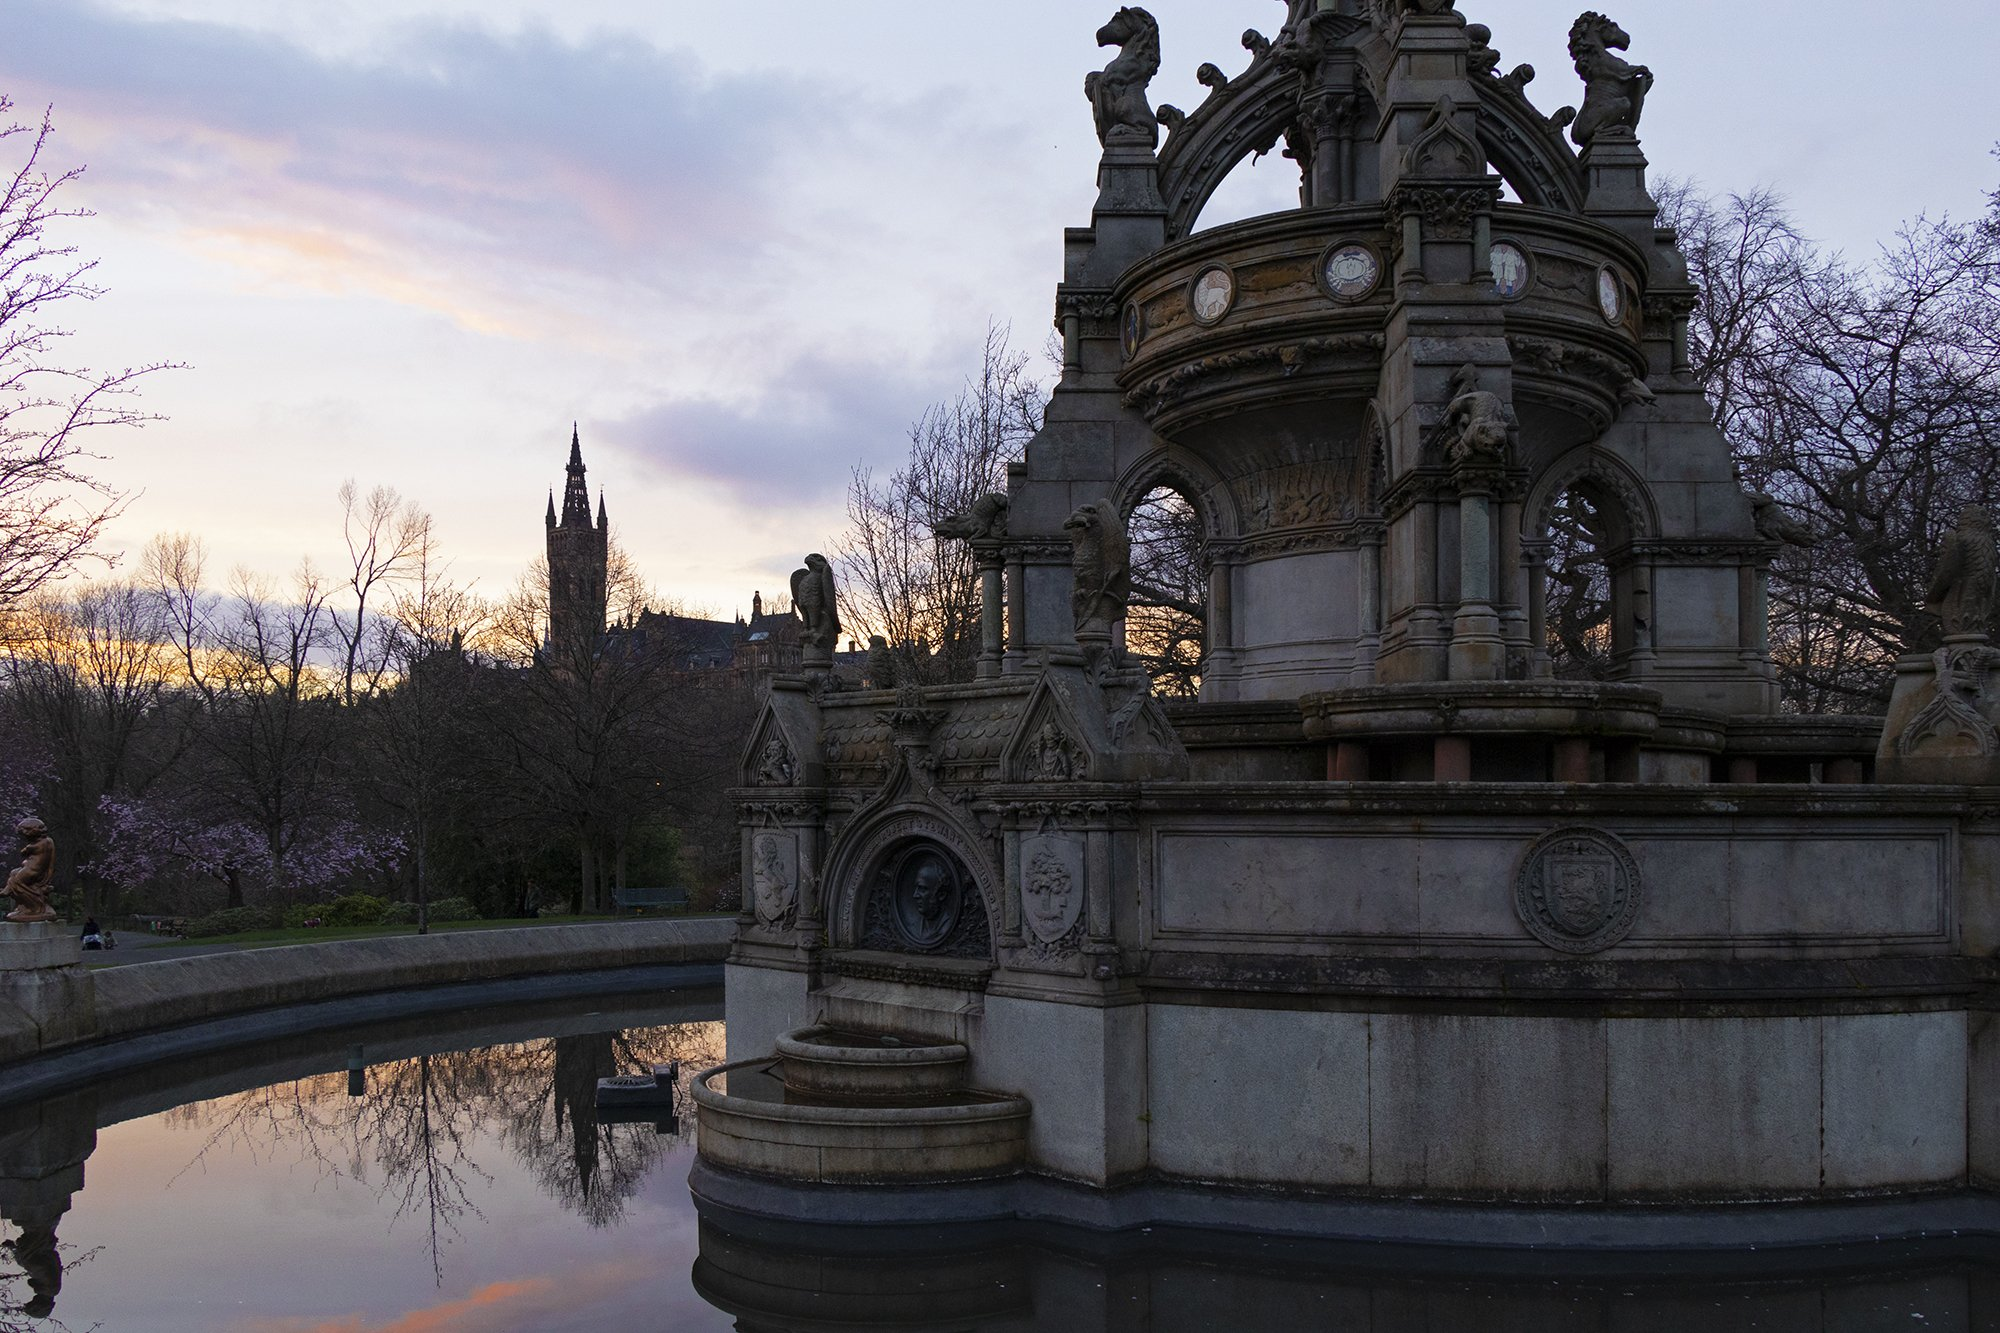 Stewart Memorial Fountain, Kelvingrove Park, Glasgow